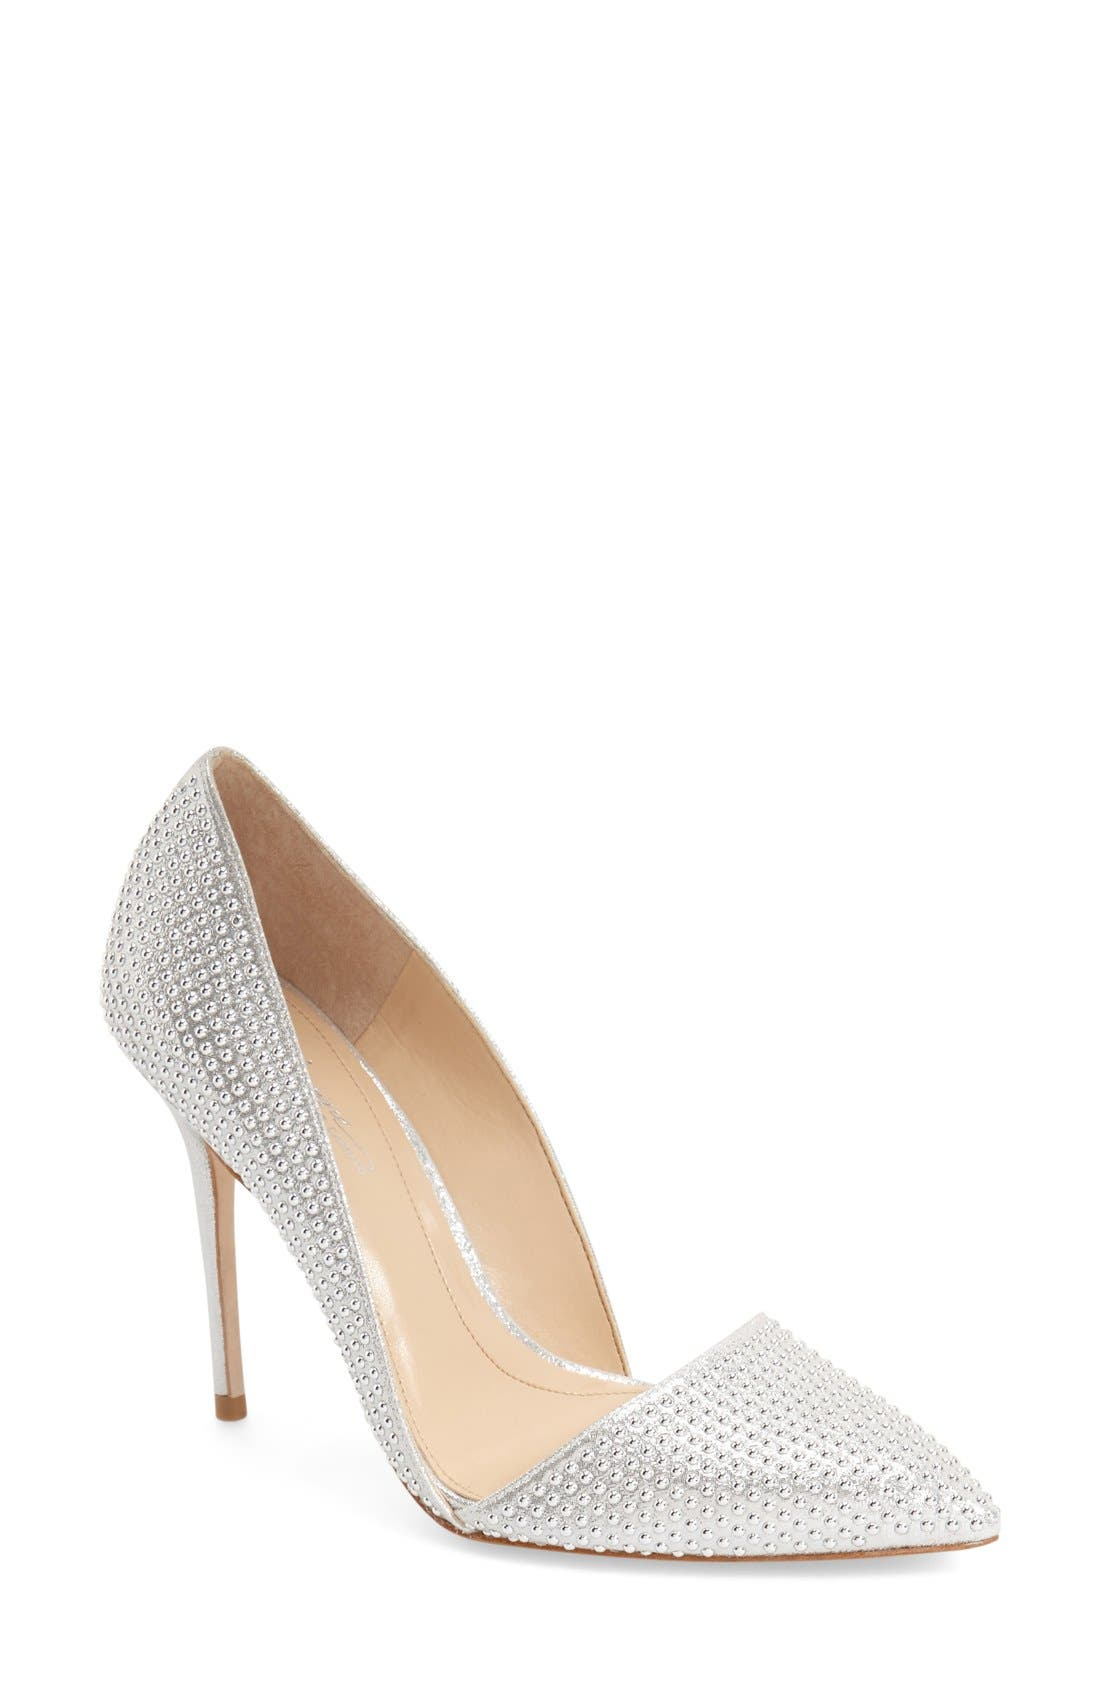 Imagine Vince Camuto 'Ossie' d'Orsay Pump,                         Main,                         color, Platinum Shimmer